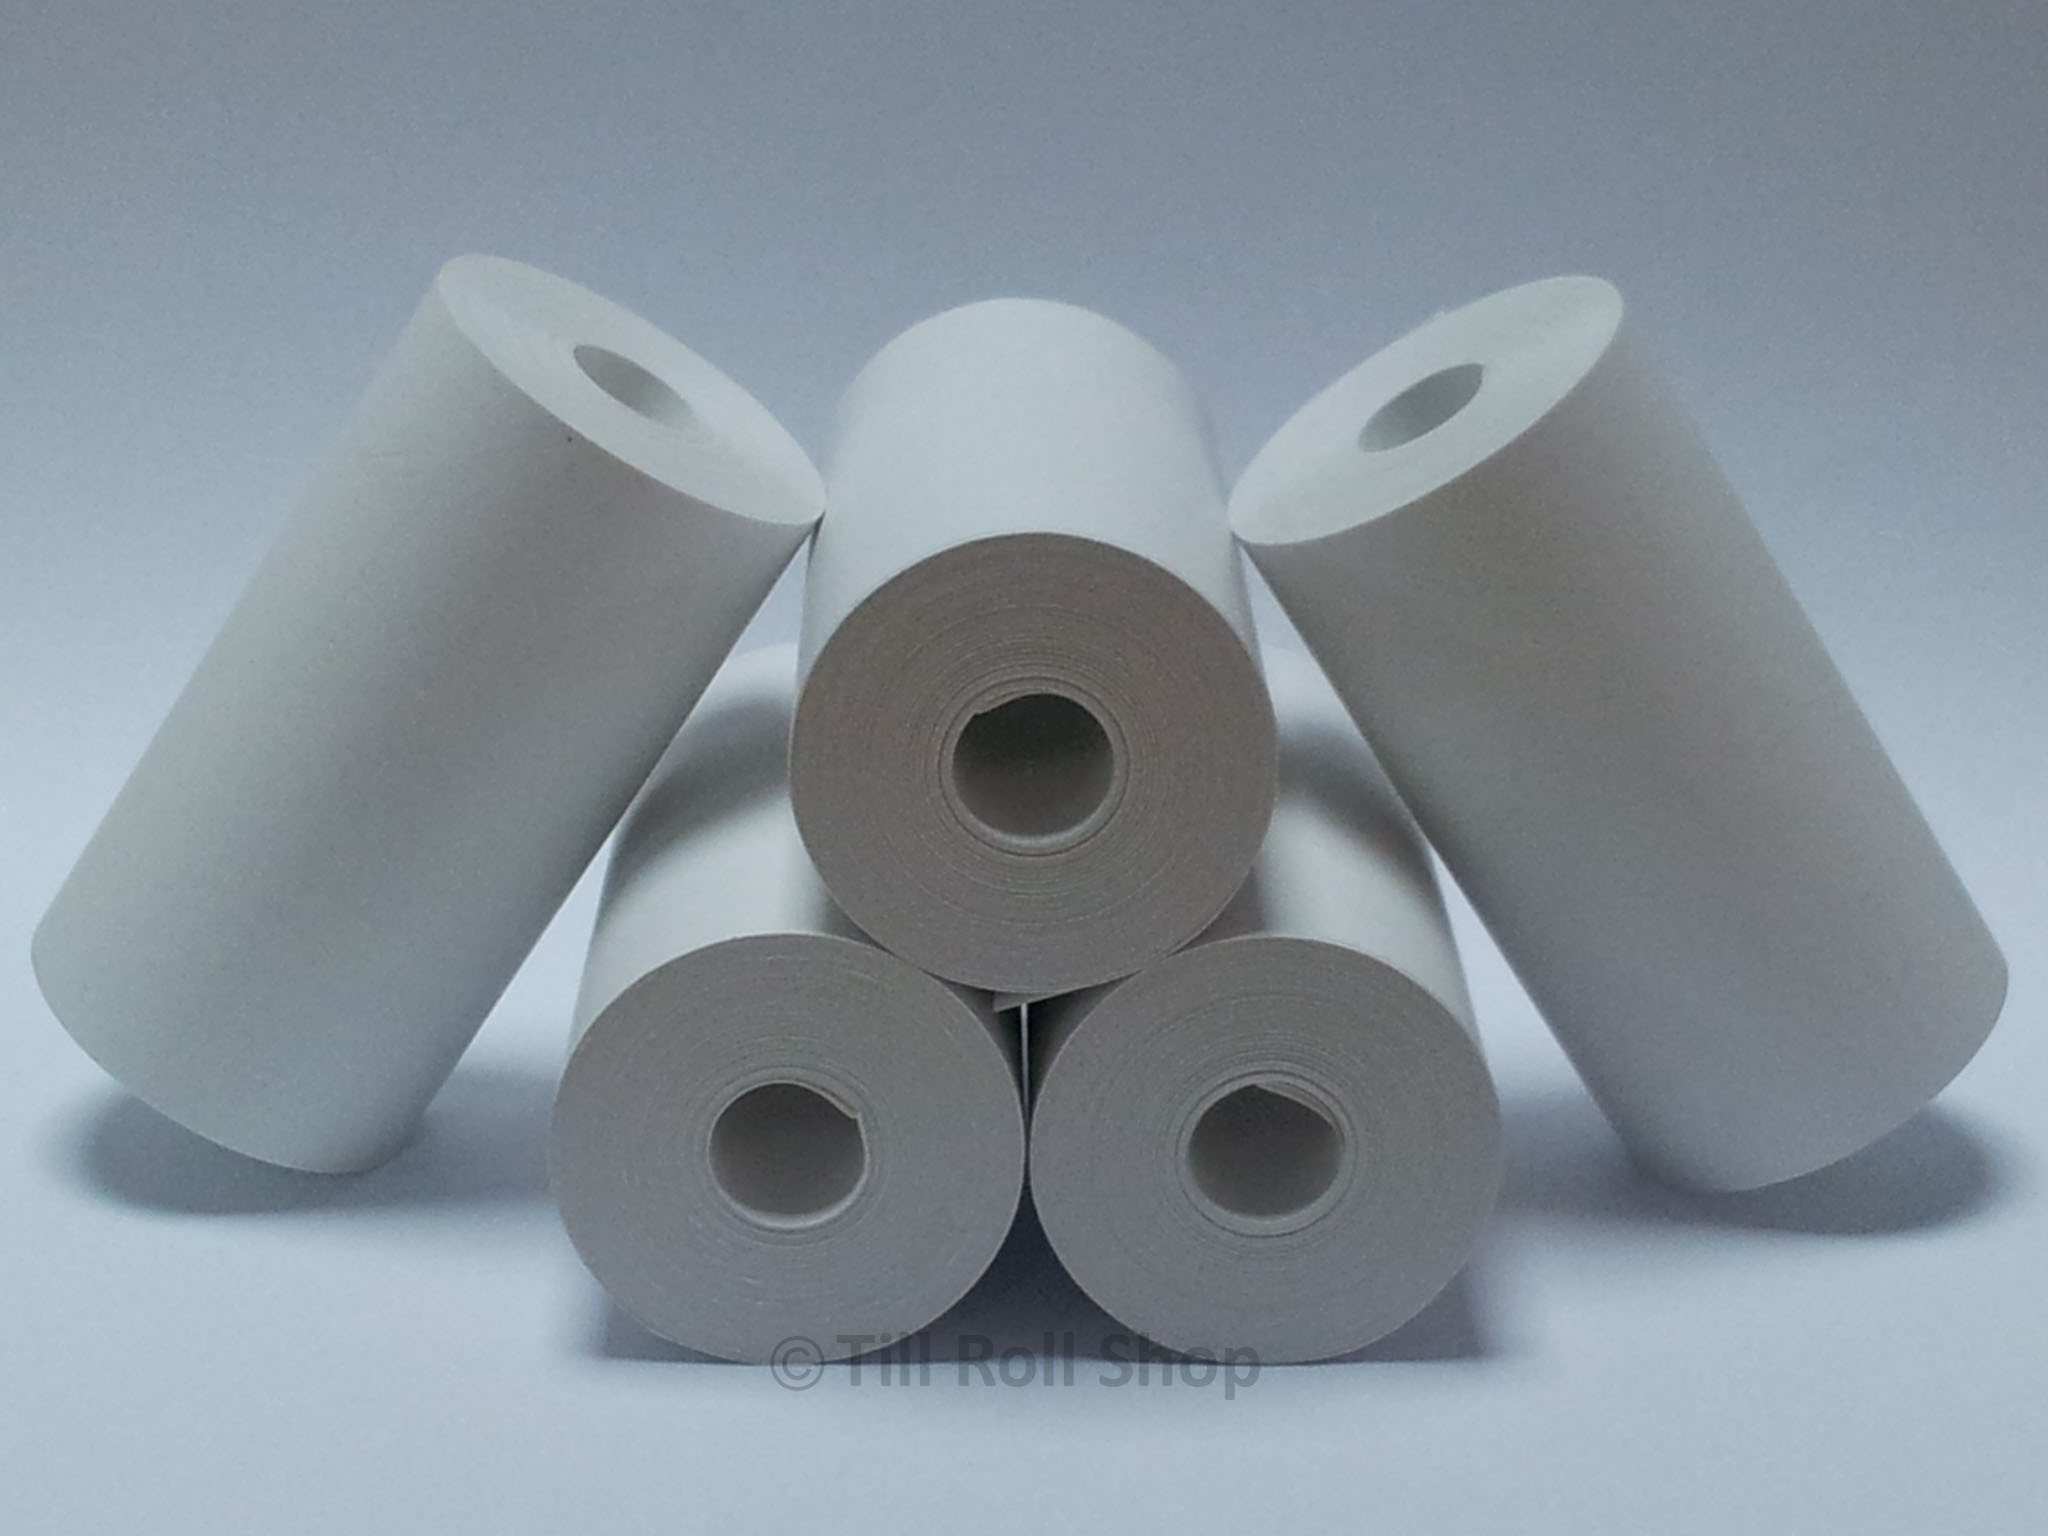 Till rolls//Chip /& Pin Rolls For Dione Xtreame 57x40 thermal Credit card Machine Rolls